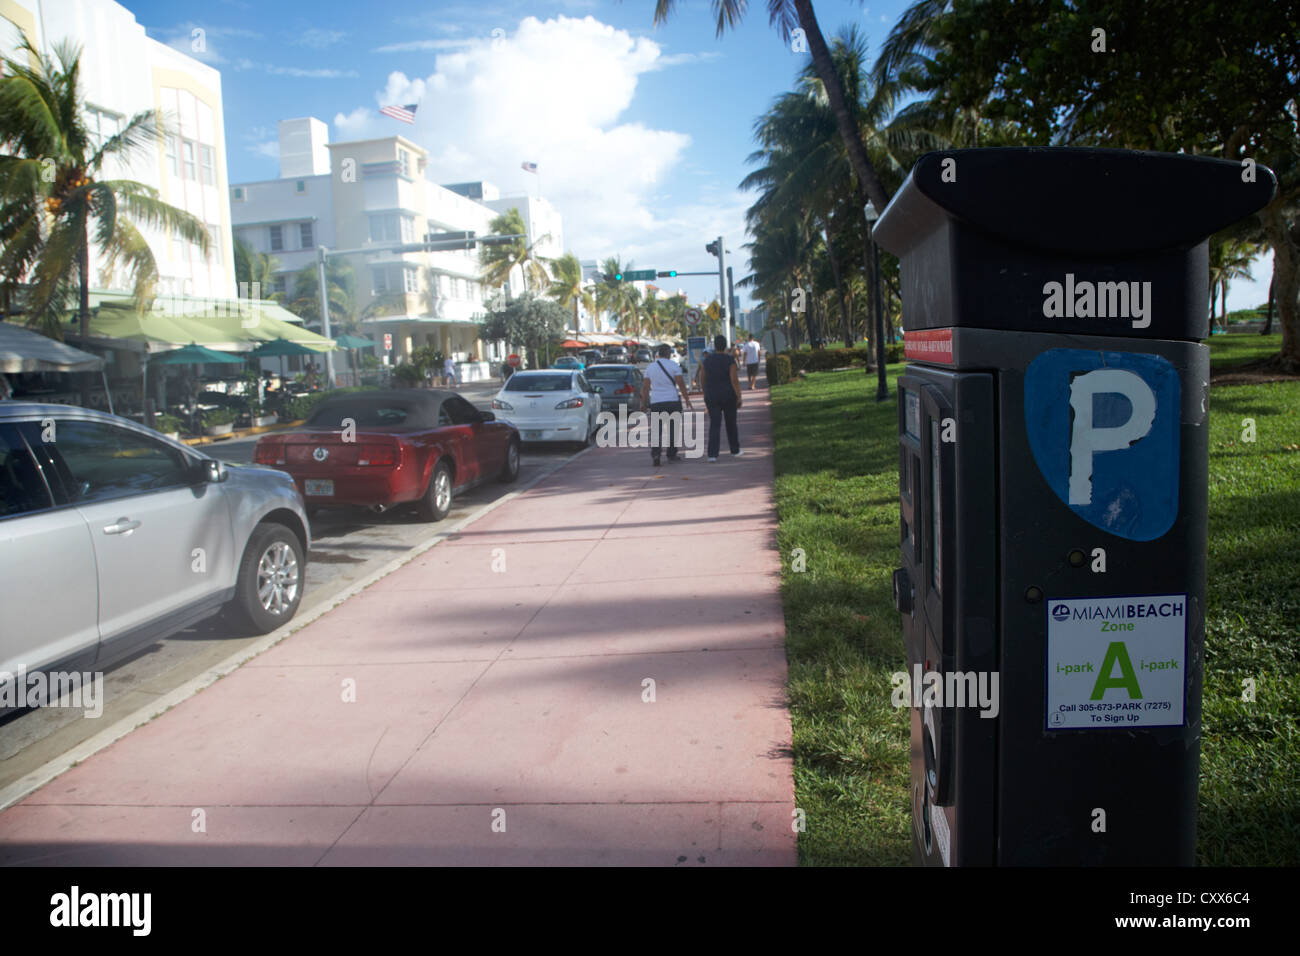 parking ticket machine ocean drive early morning art deco district miami south beach florida usa - Stock Image